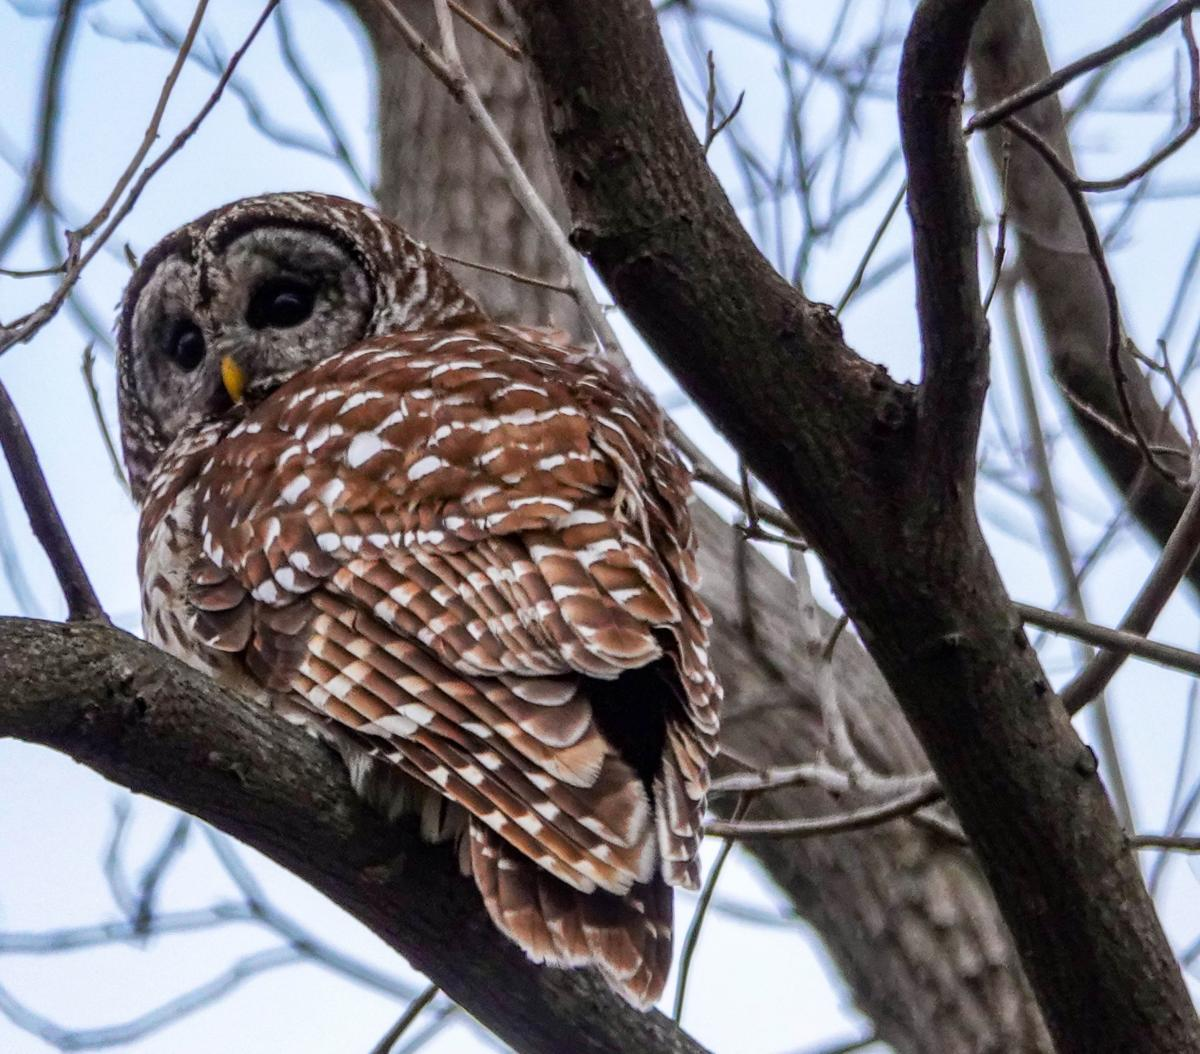 Barred Owl sitting on bare tree branch at Monocacy River Trail